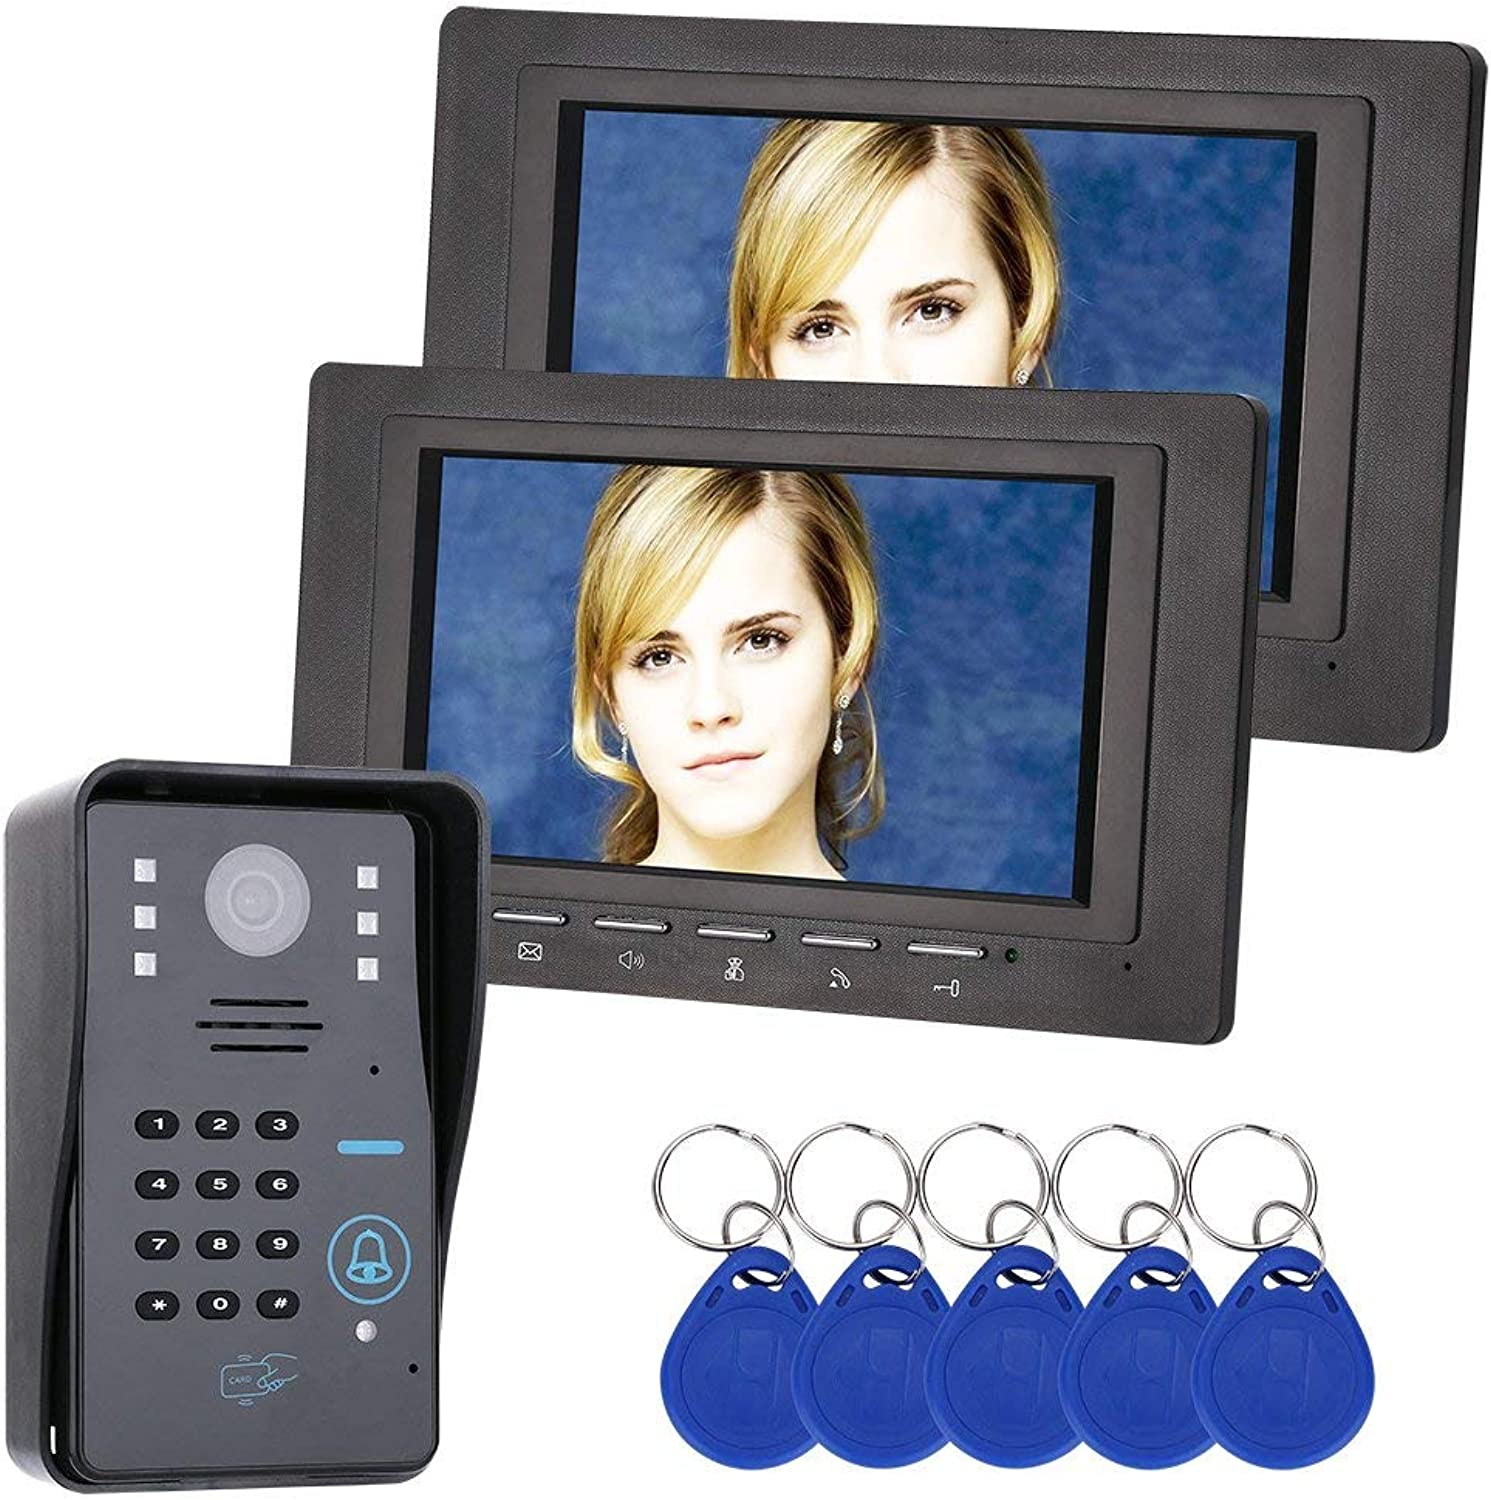 ZHANG 7 inch 2 Monitor RFID Password Video Door Phone Intercom Doorbell With IR Camera 1000 TV Line Access Control System